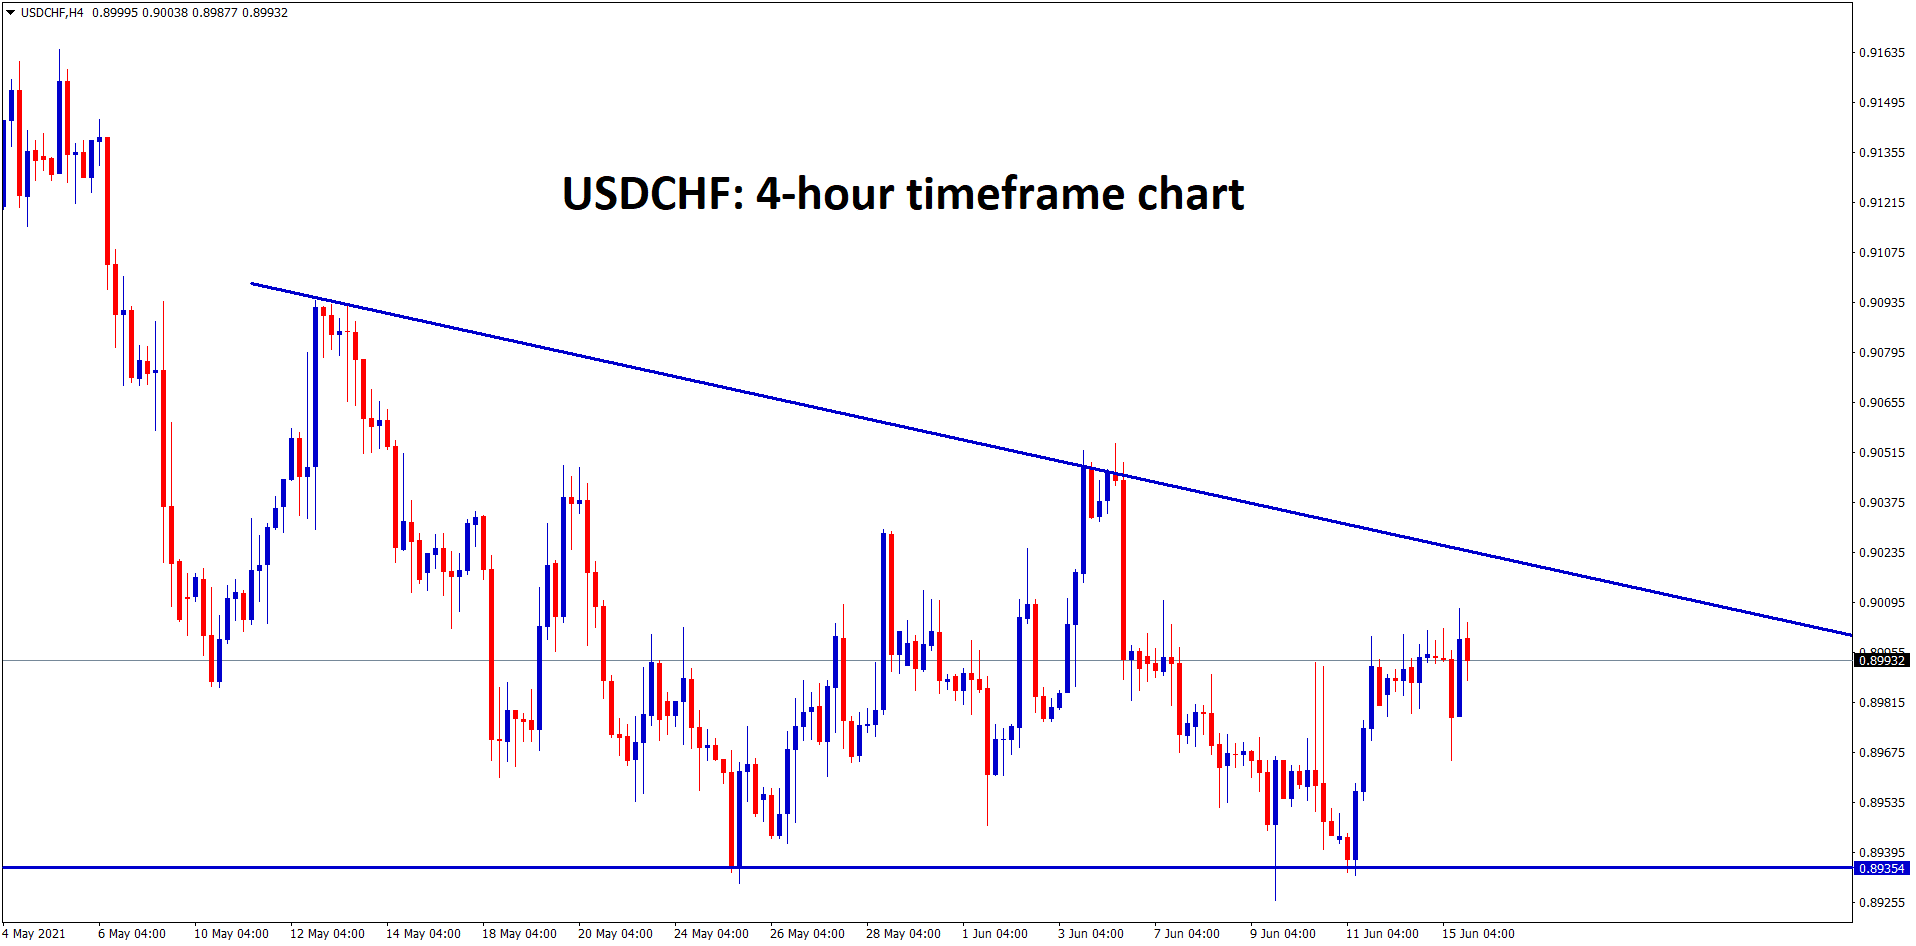 USDCHF is moving in a descending triangle wait for breakout from this triangle